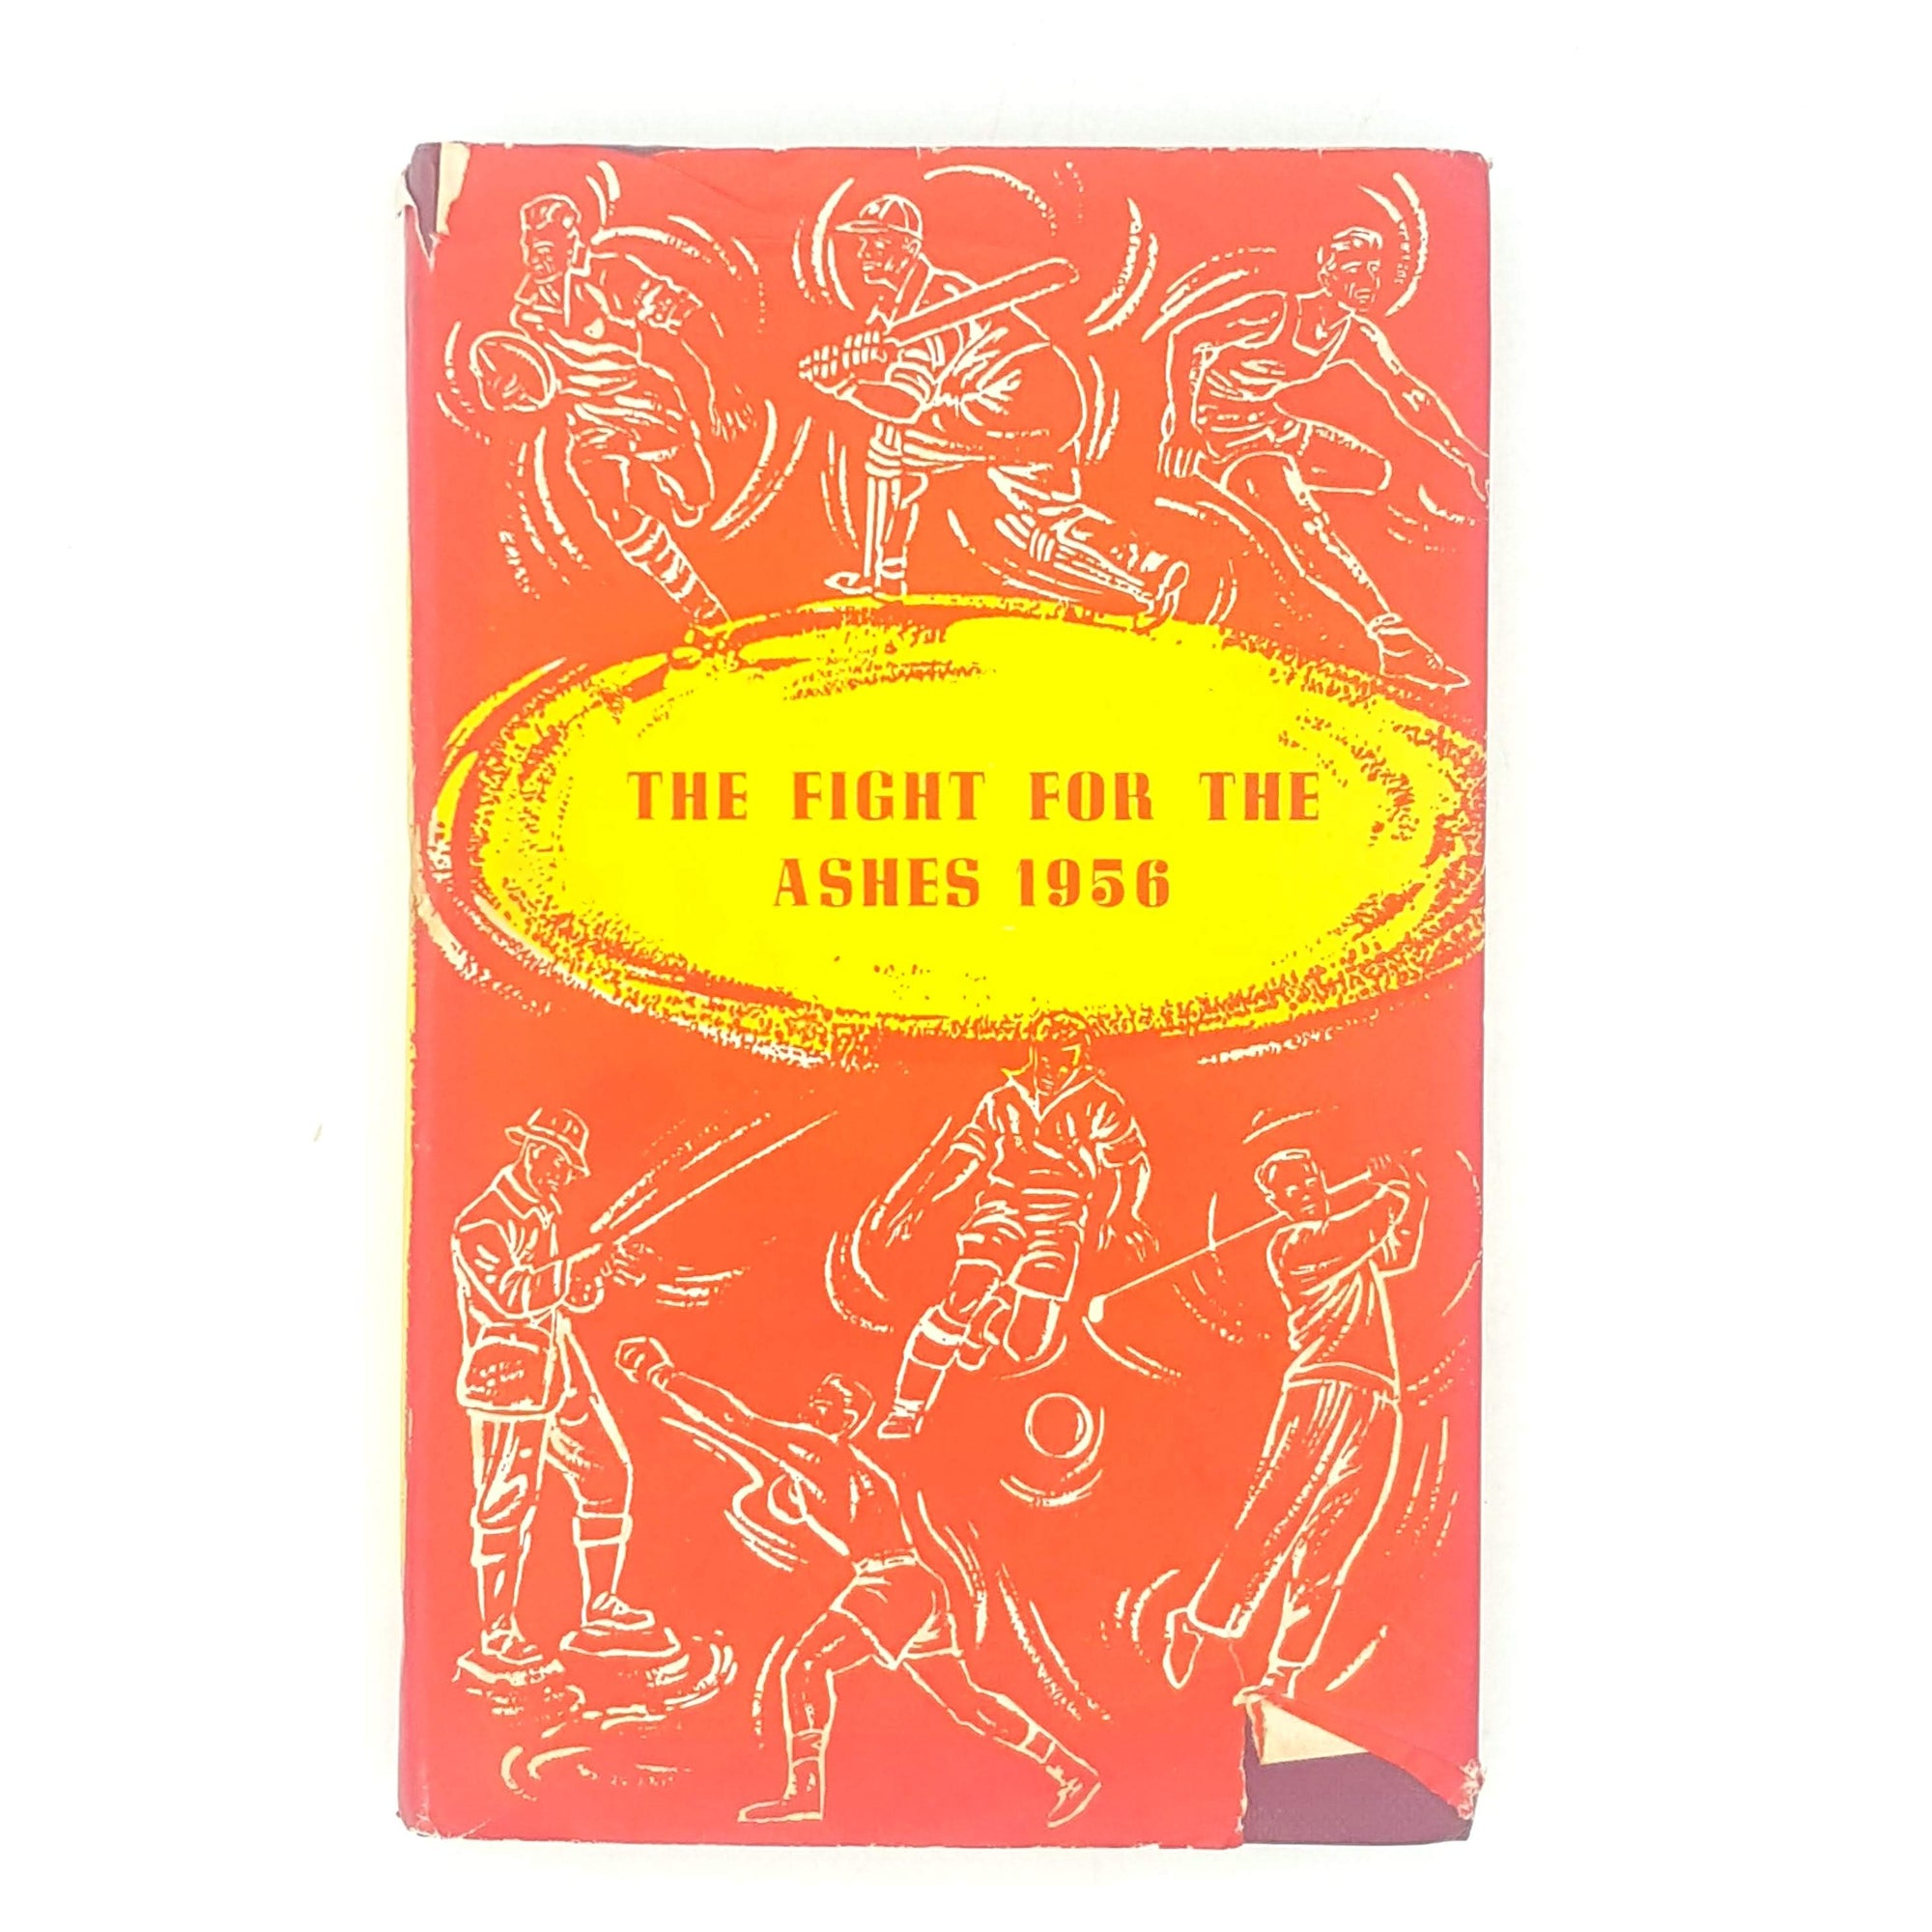 The Fight for the Ashes by P. West 1956